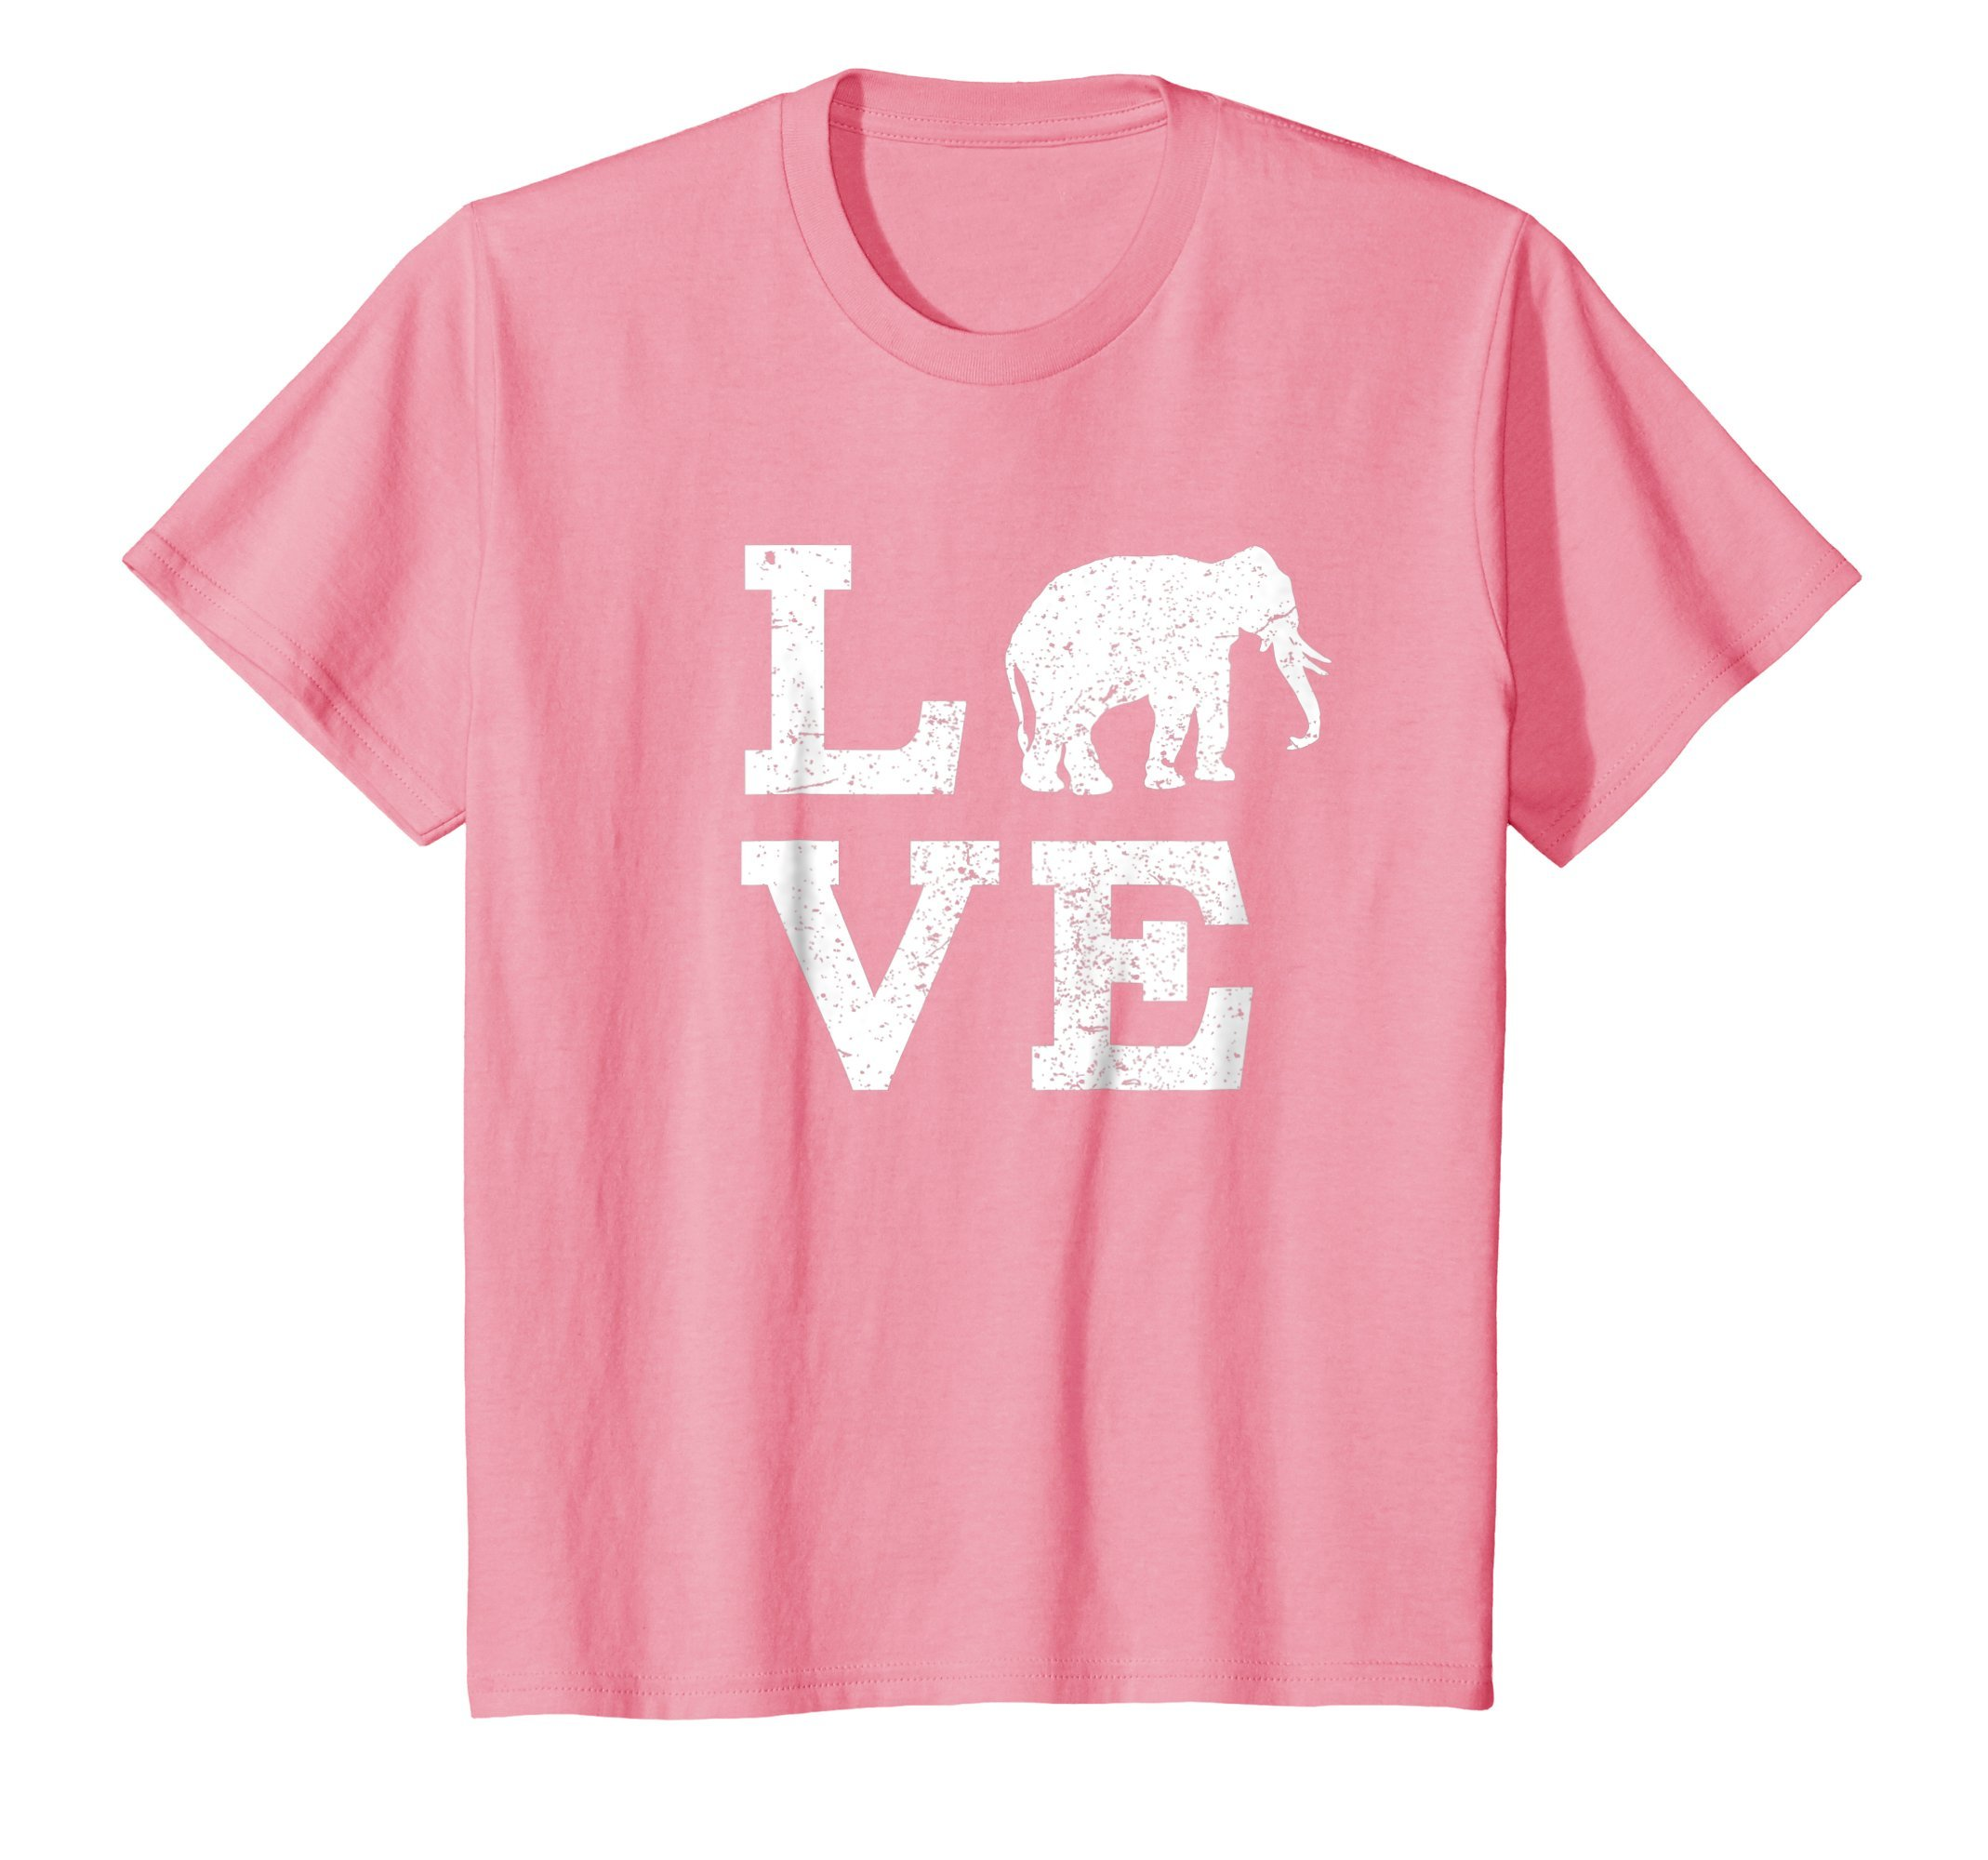 Kids I Love Elephants T-Shirt Funny 12 Pink by I Love Animals Shirt (Image #1)